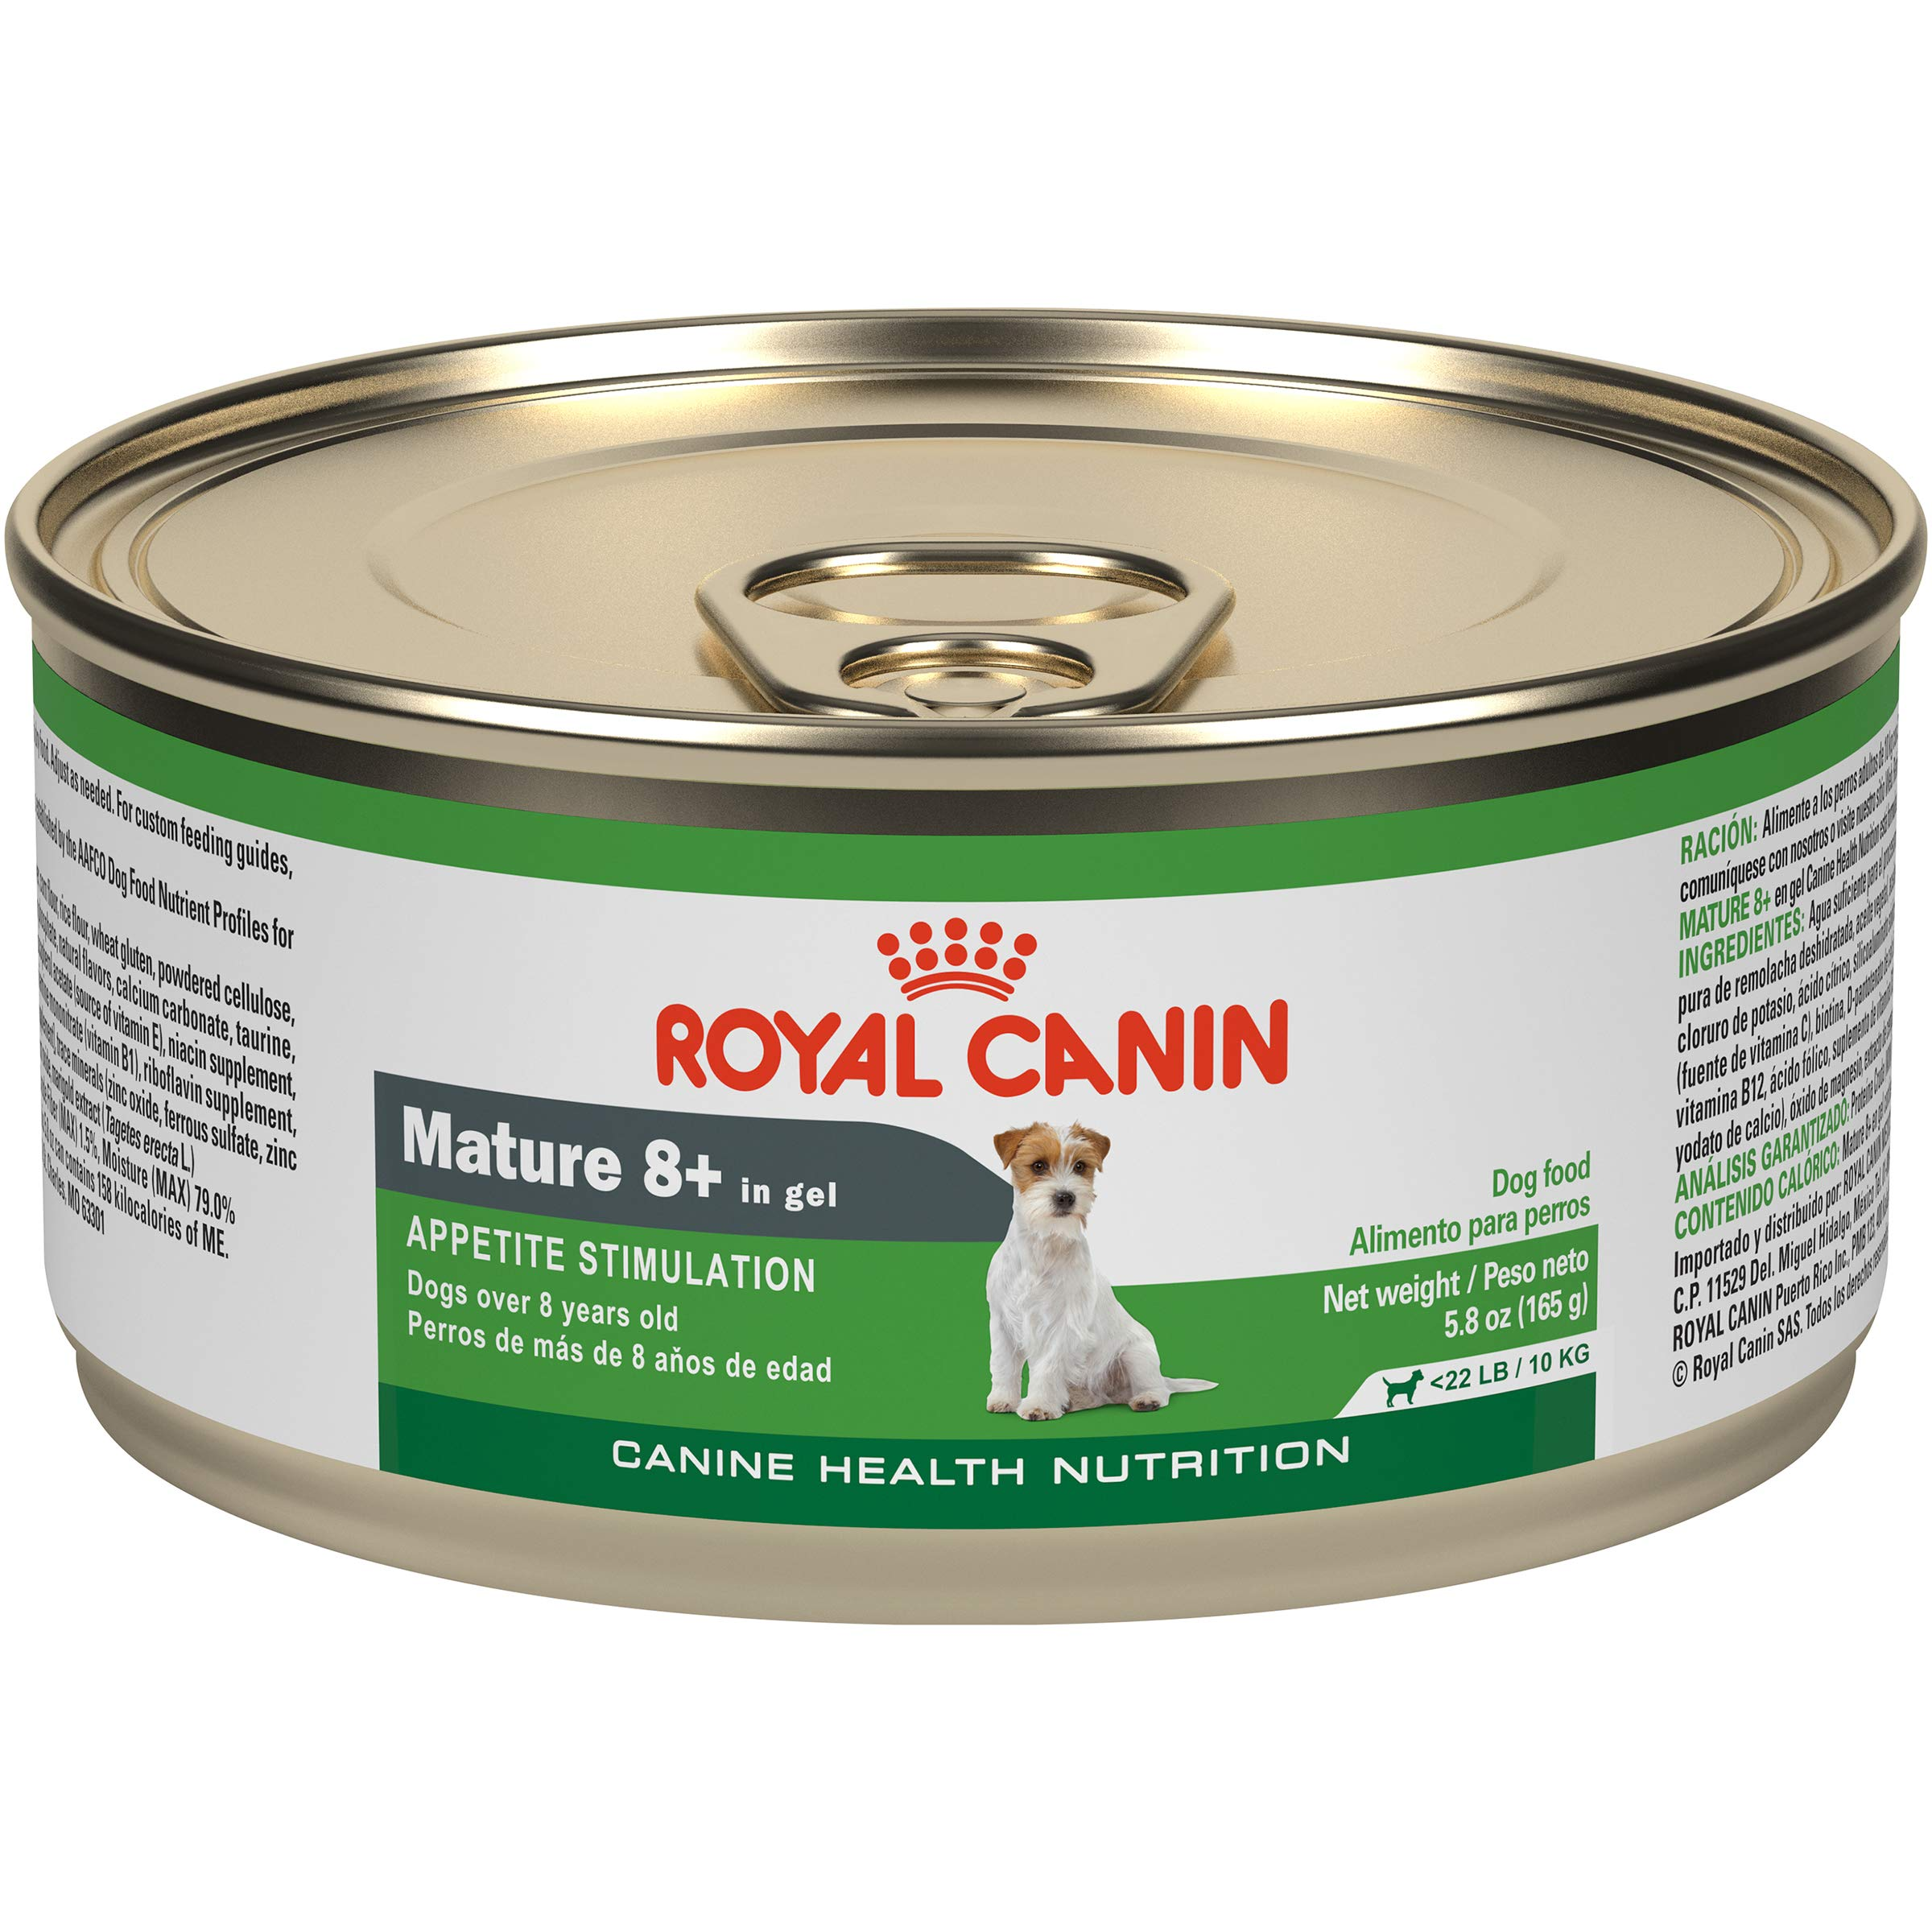 Royal Canin Canine Health Nutrition Mature 8+ In Gel Canned Dog Food, 5.8 oz by Royal Canin